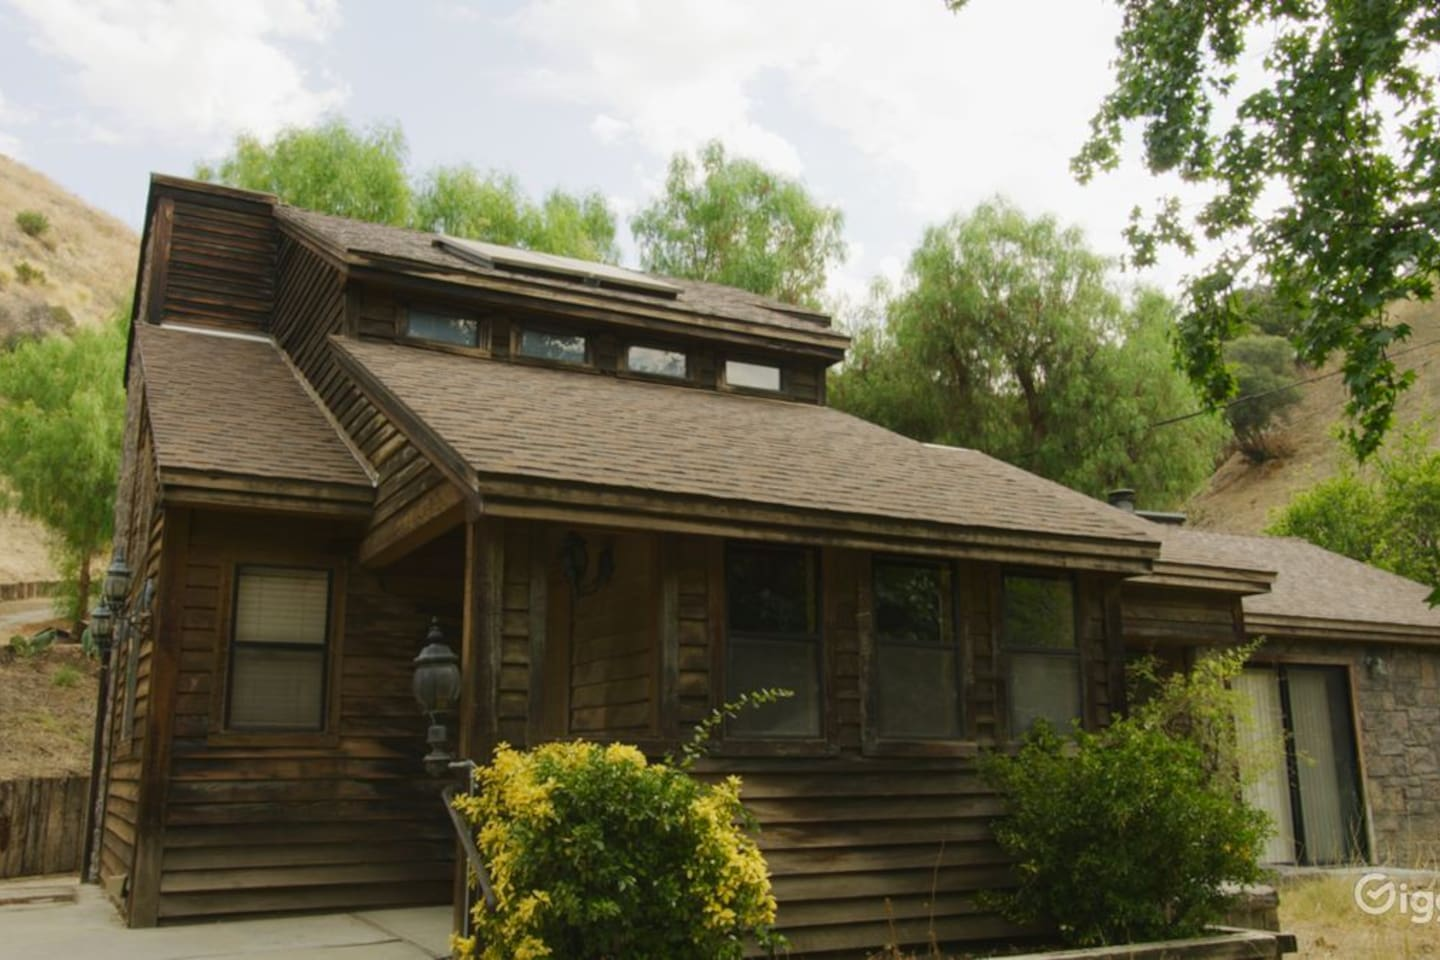 Beautiful log cabin tucked away in our properties own box canyon. Private and very secluded